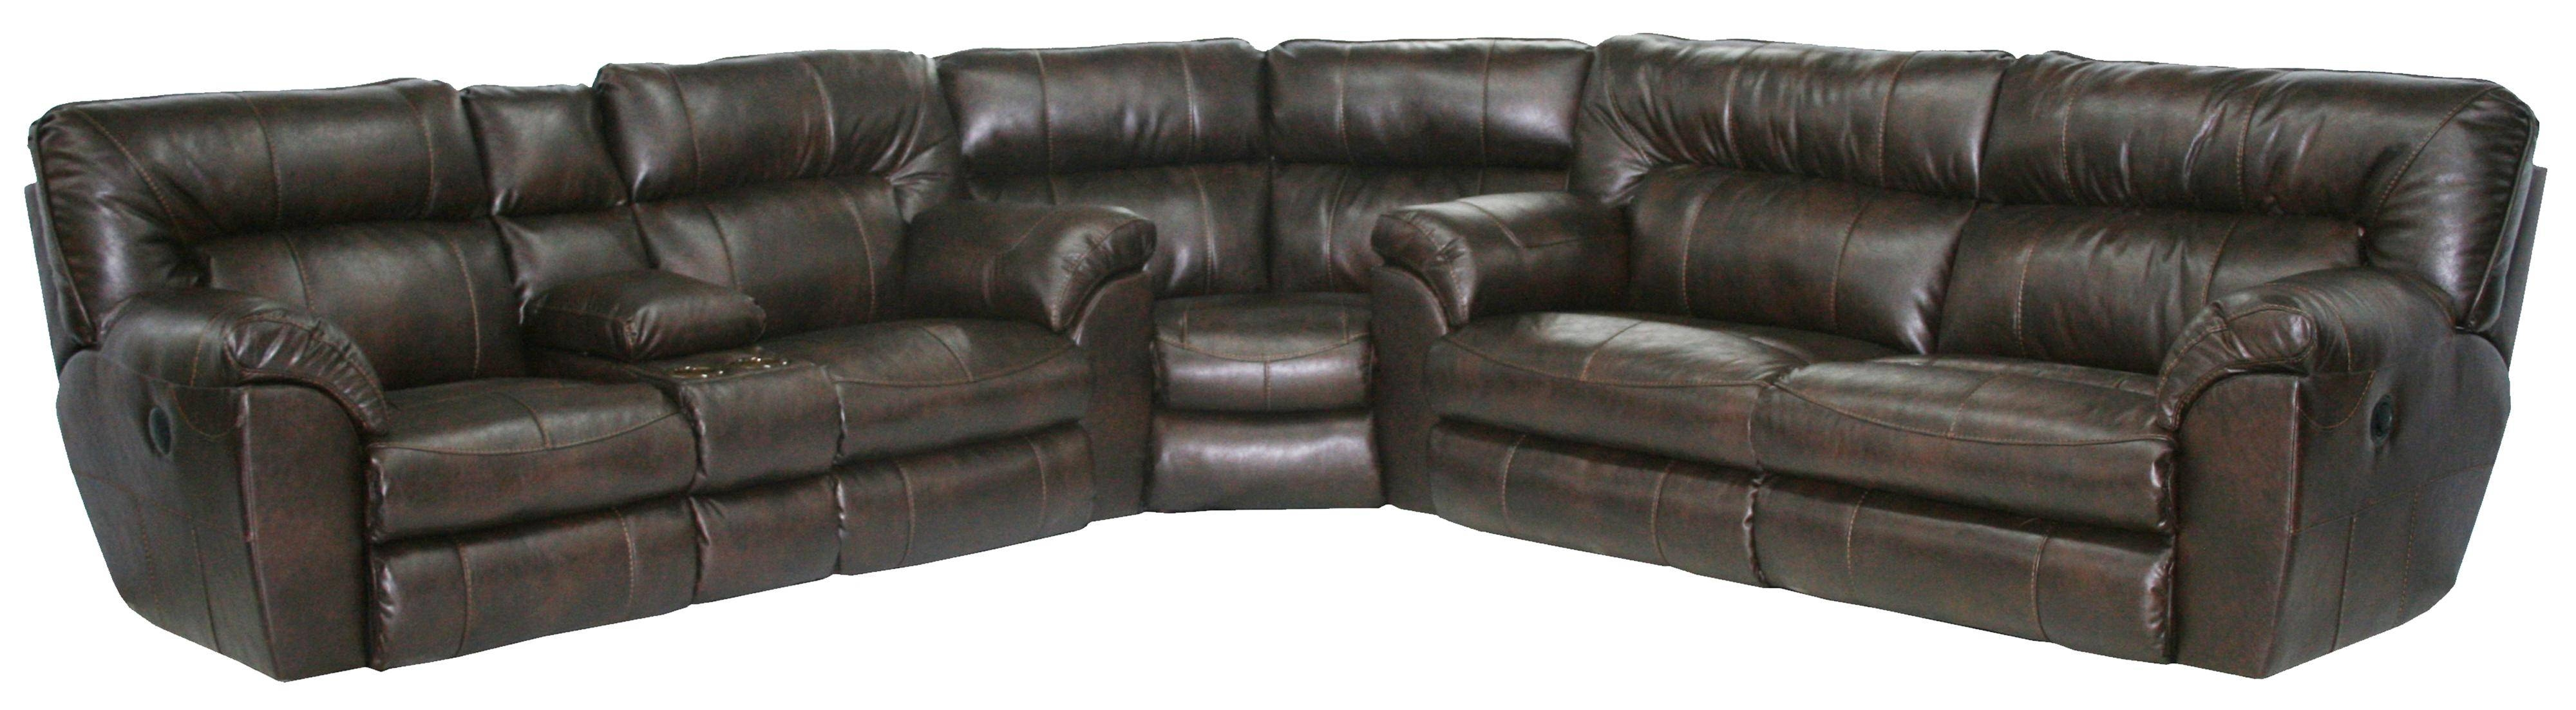 Catnapper Maverick Power Reclining Sectional Sofa With Left throughout Jedd Fabric Reclining Sectional Sofa (Image 3 of 30)